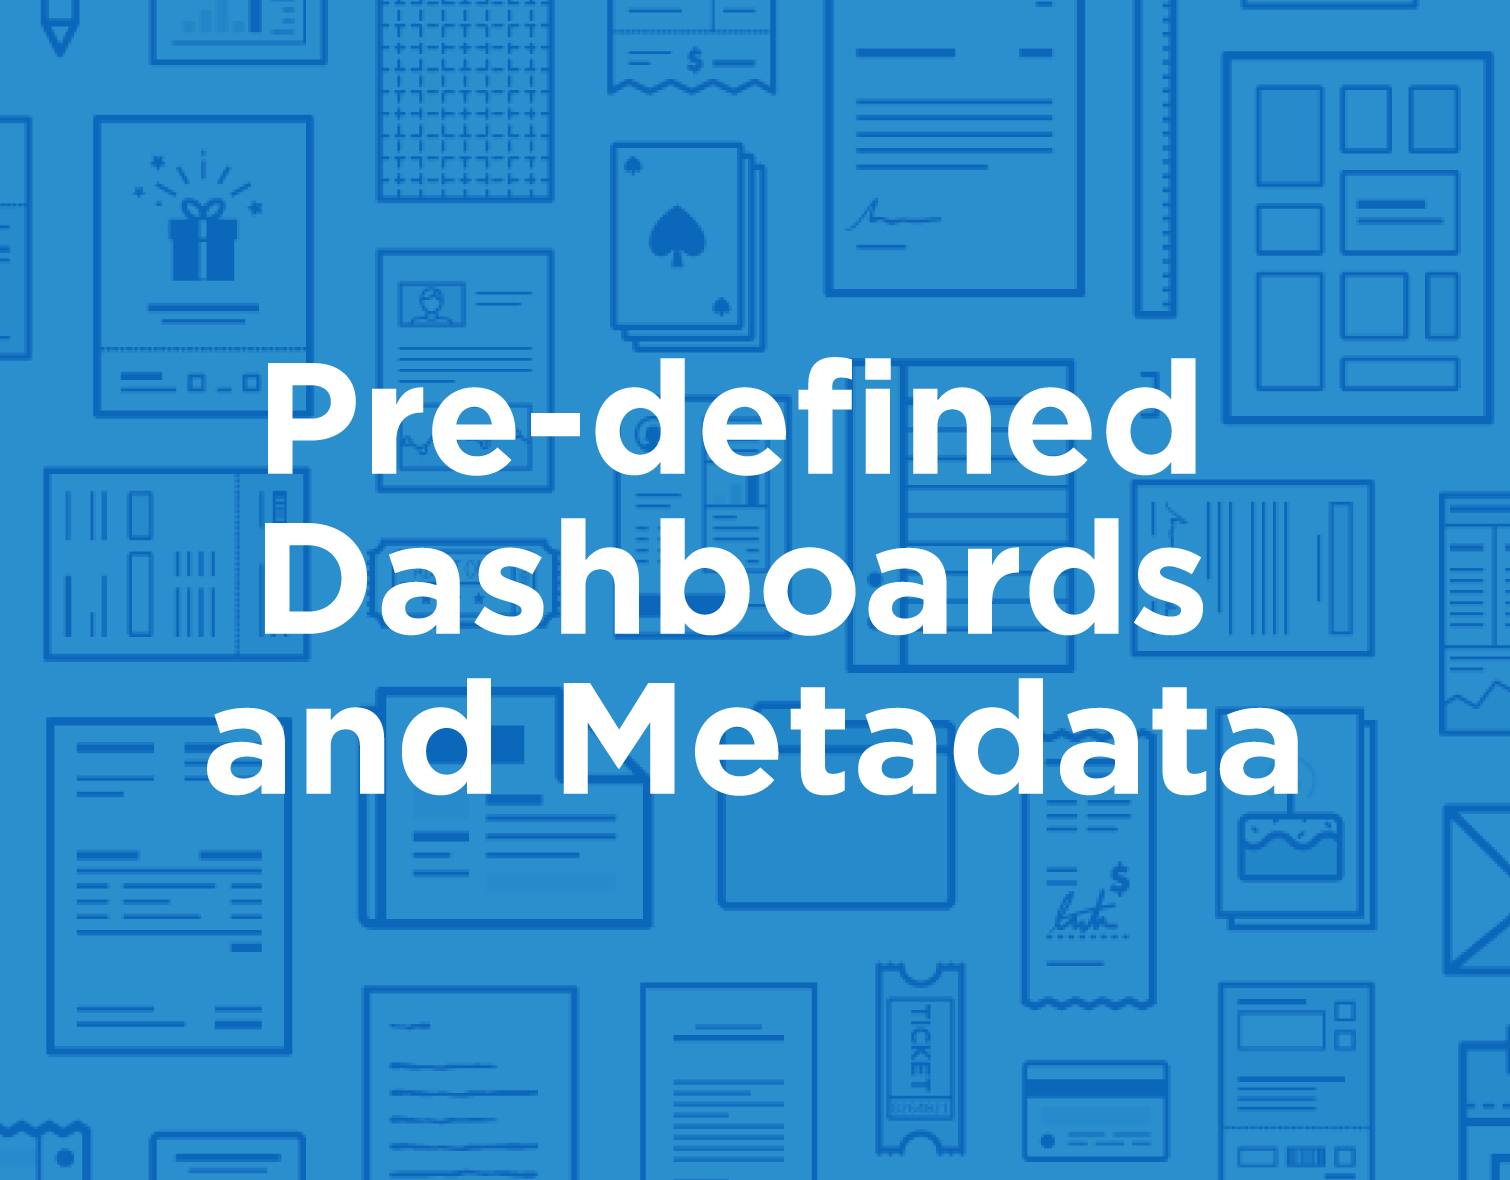 icon_products_Pre-Defined-Dashboards-and-Metadata.jpg